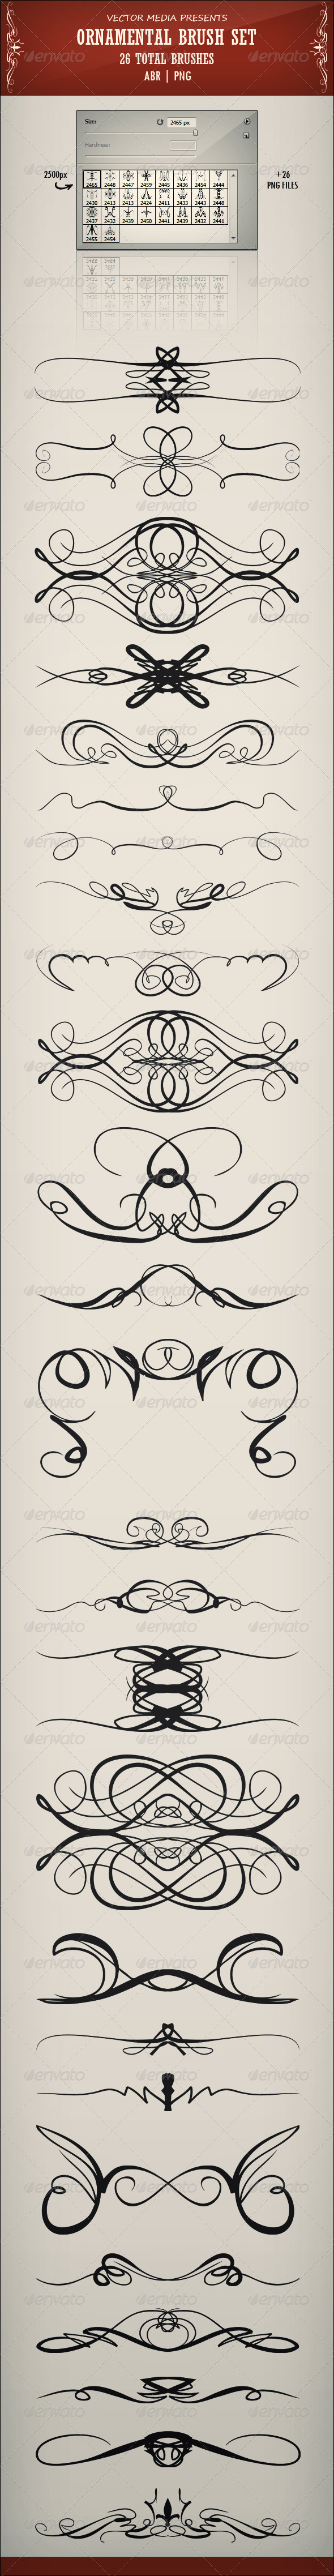 Ornamental Brush Set - Flourishes Brushes